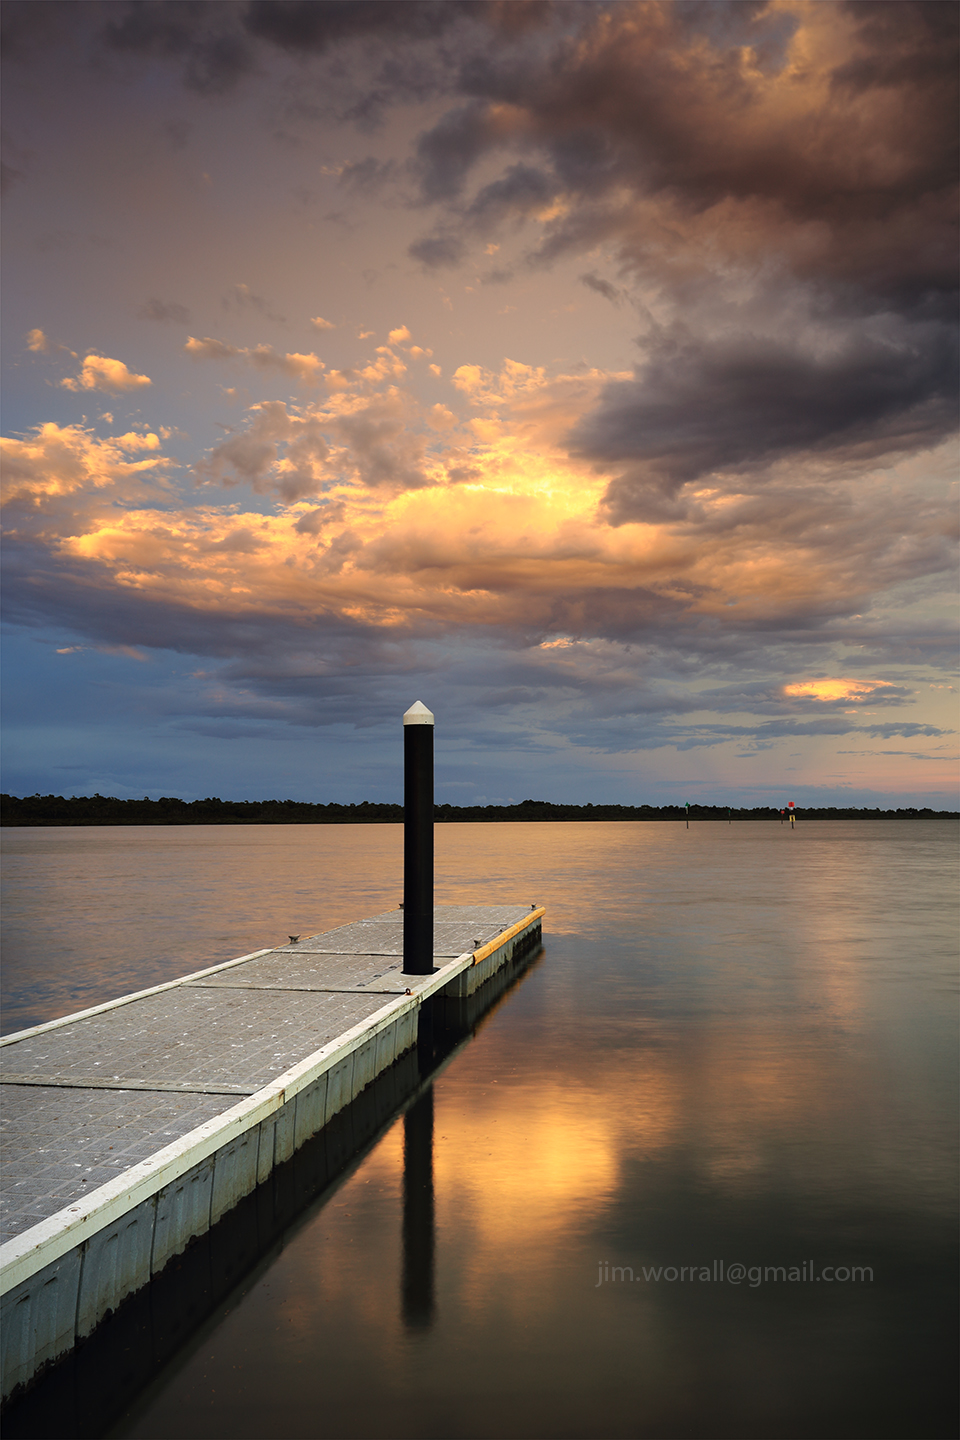 Jim Worrall, Blind Bight, western port bay, pontoon, sunset, seascape